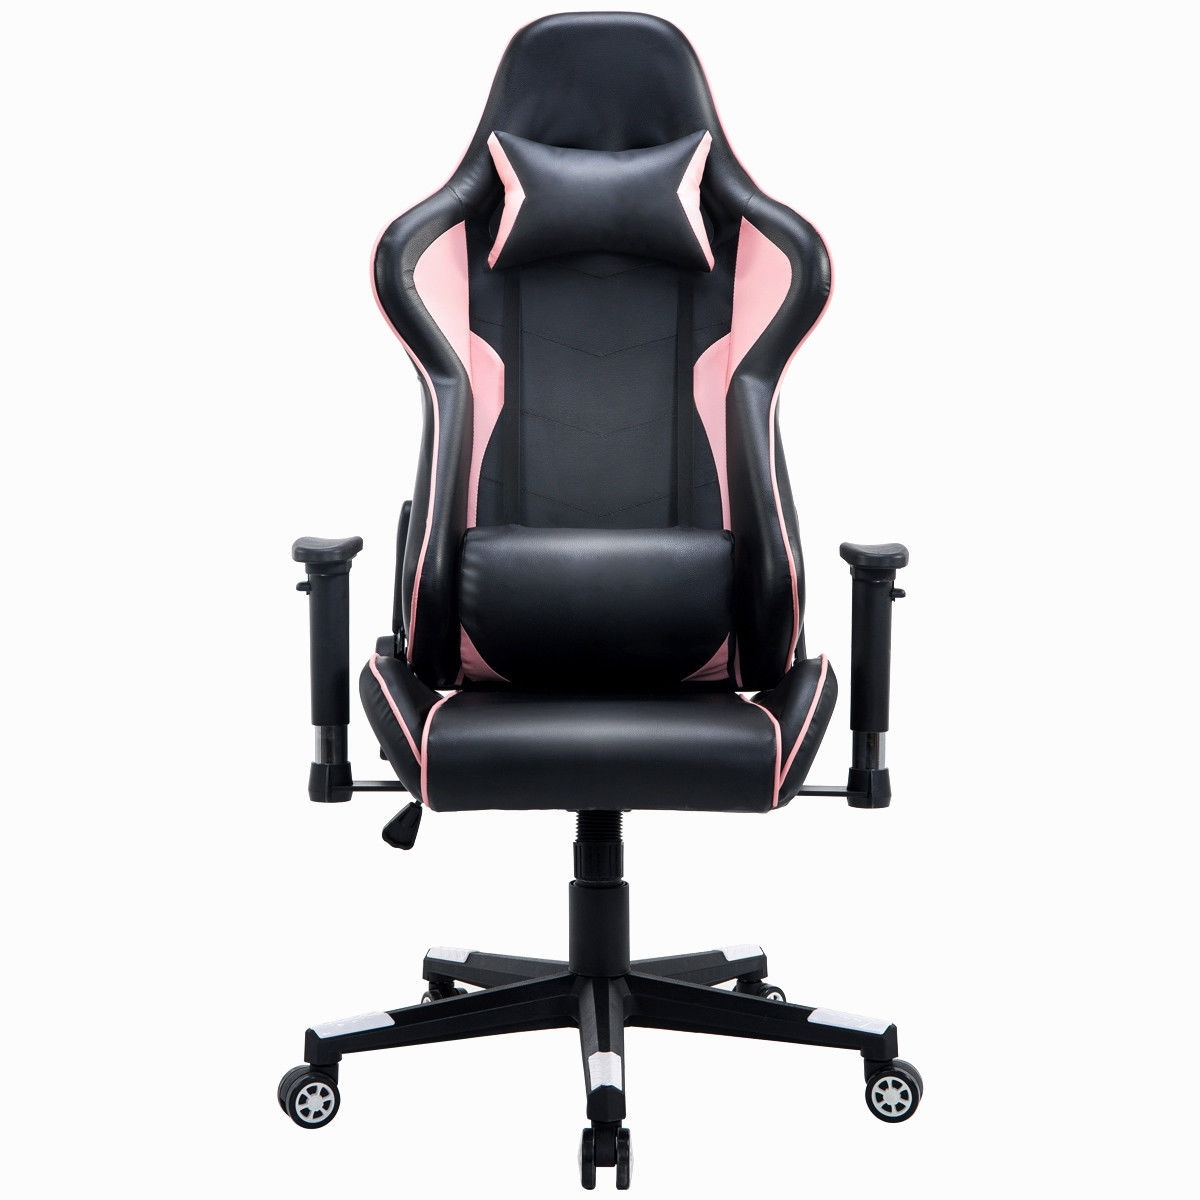 racing office chairs walmart transport chair shop costway executive gaming high back w lumbar support headrest black pink free shipping today overstock com